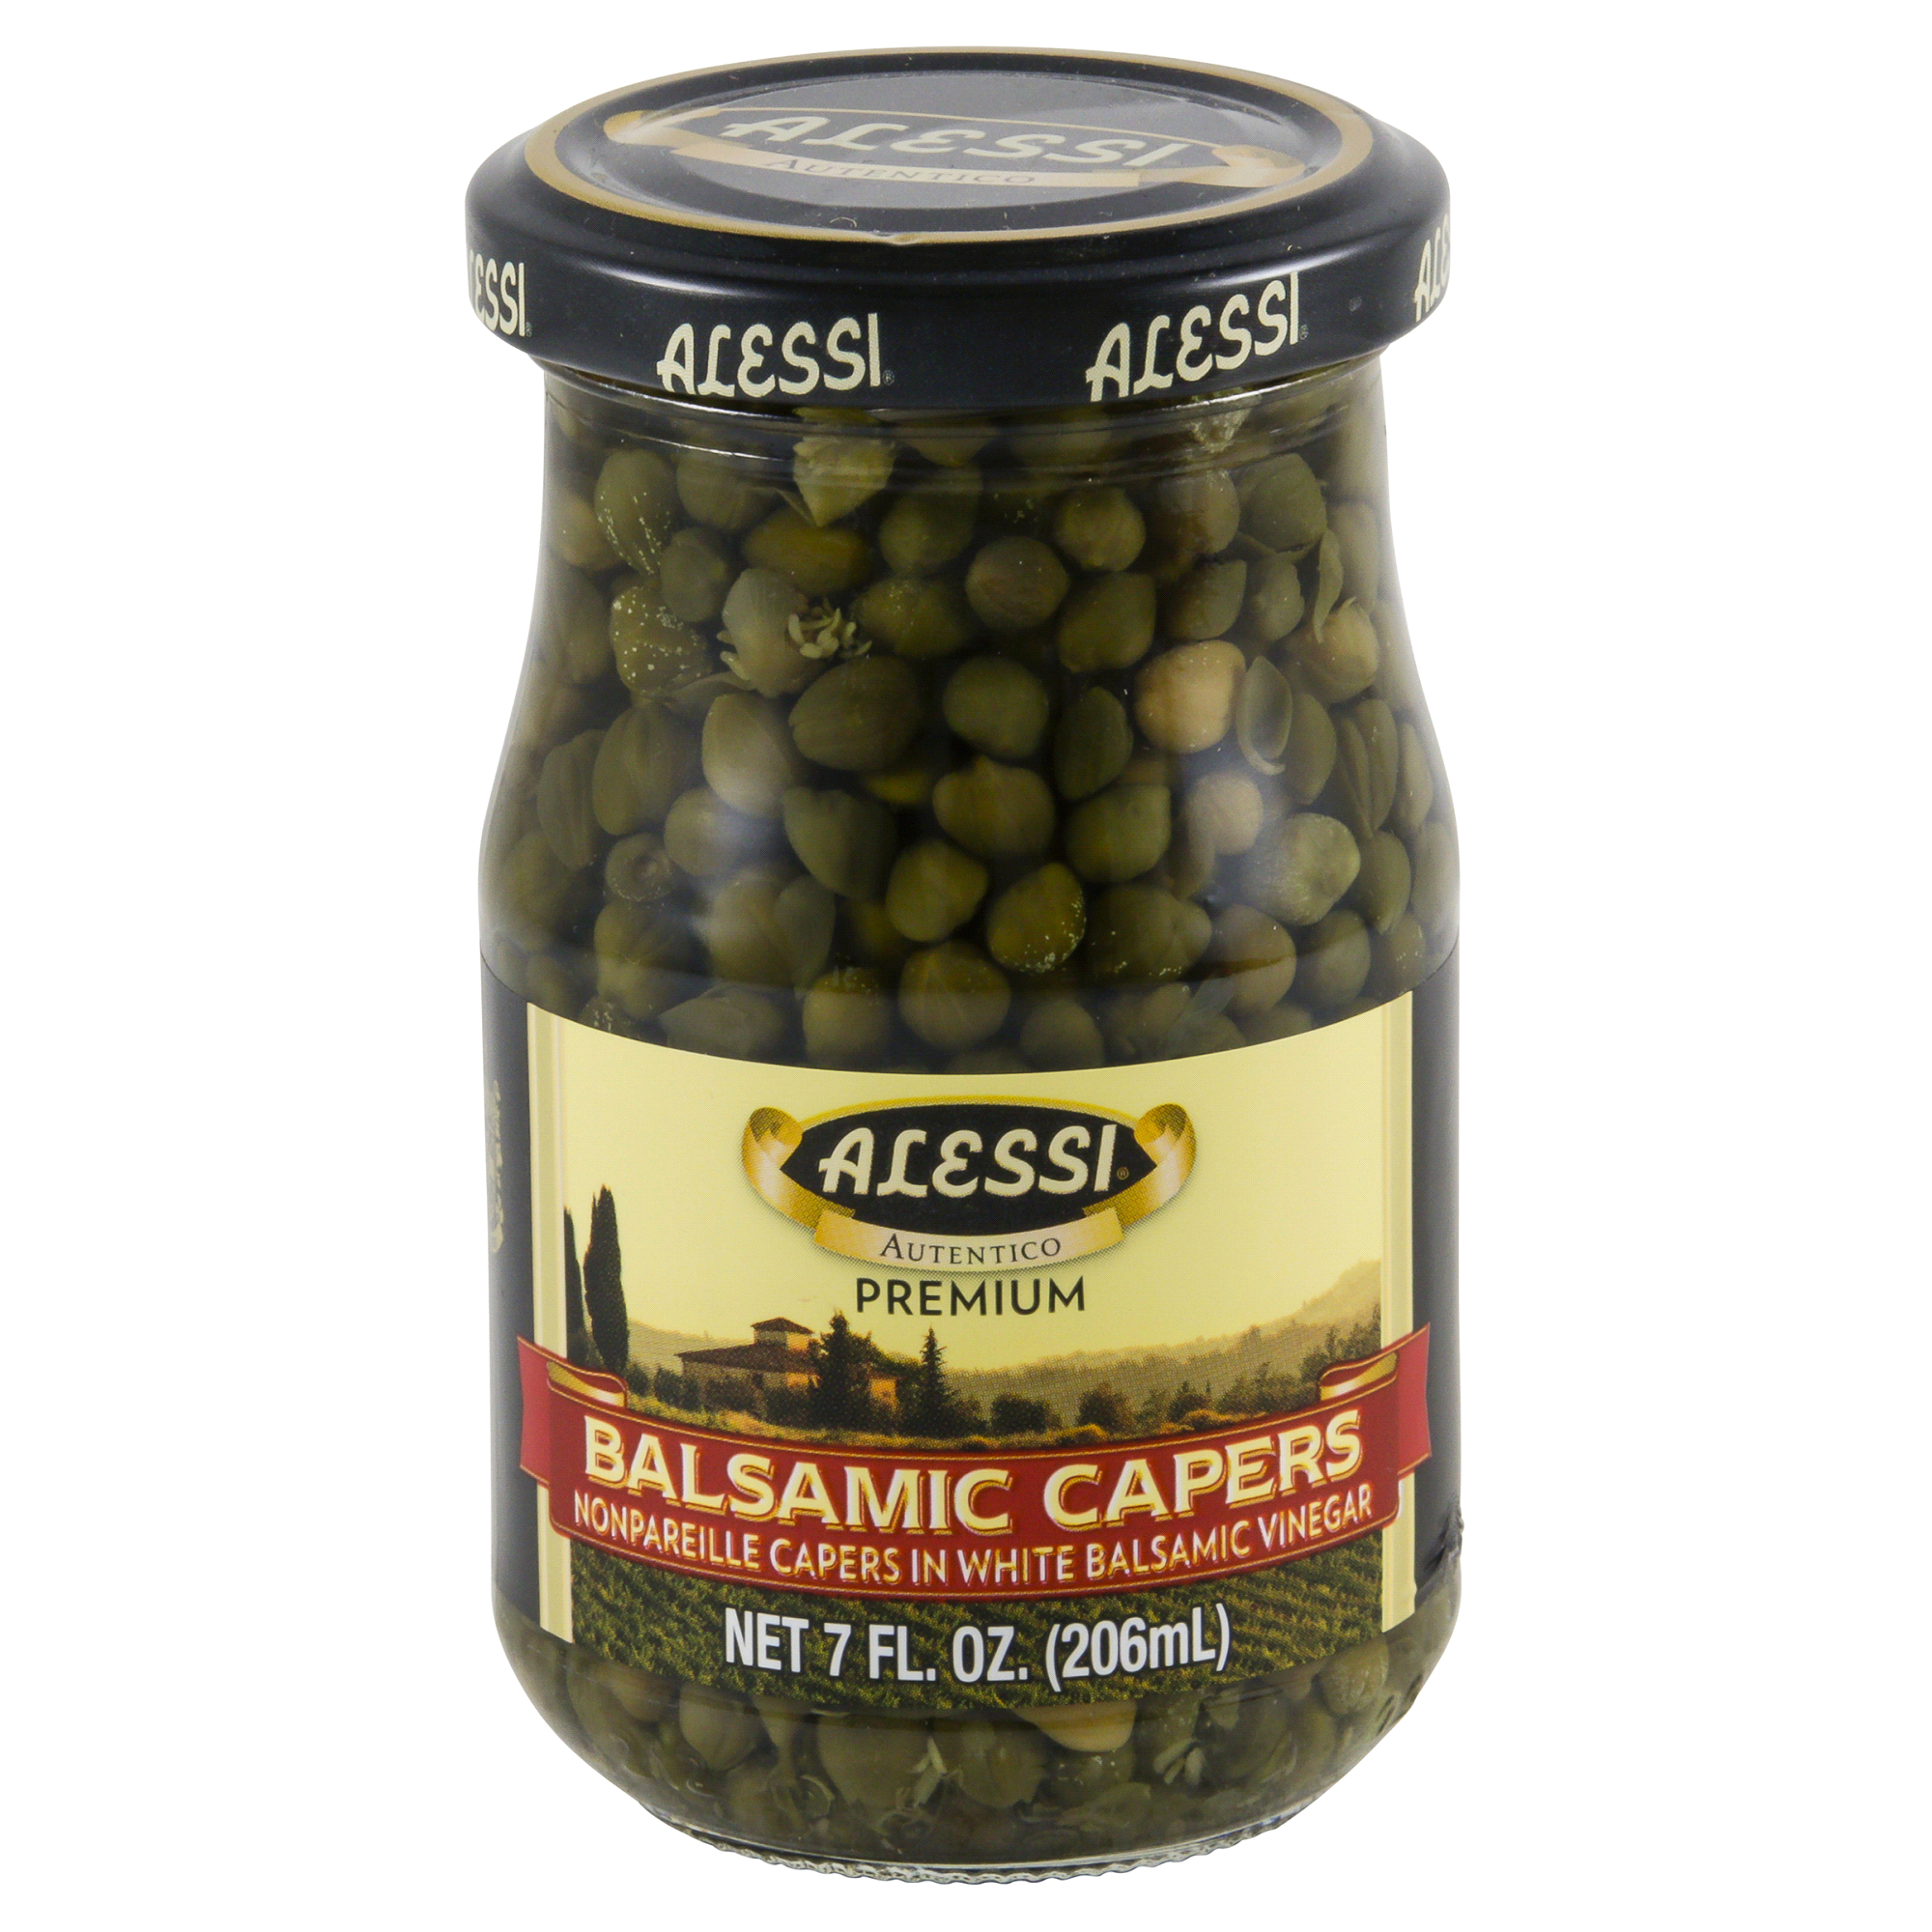 Alessi Balsamic Capers 7 oz. | Meijer.com